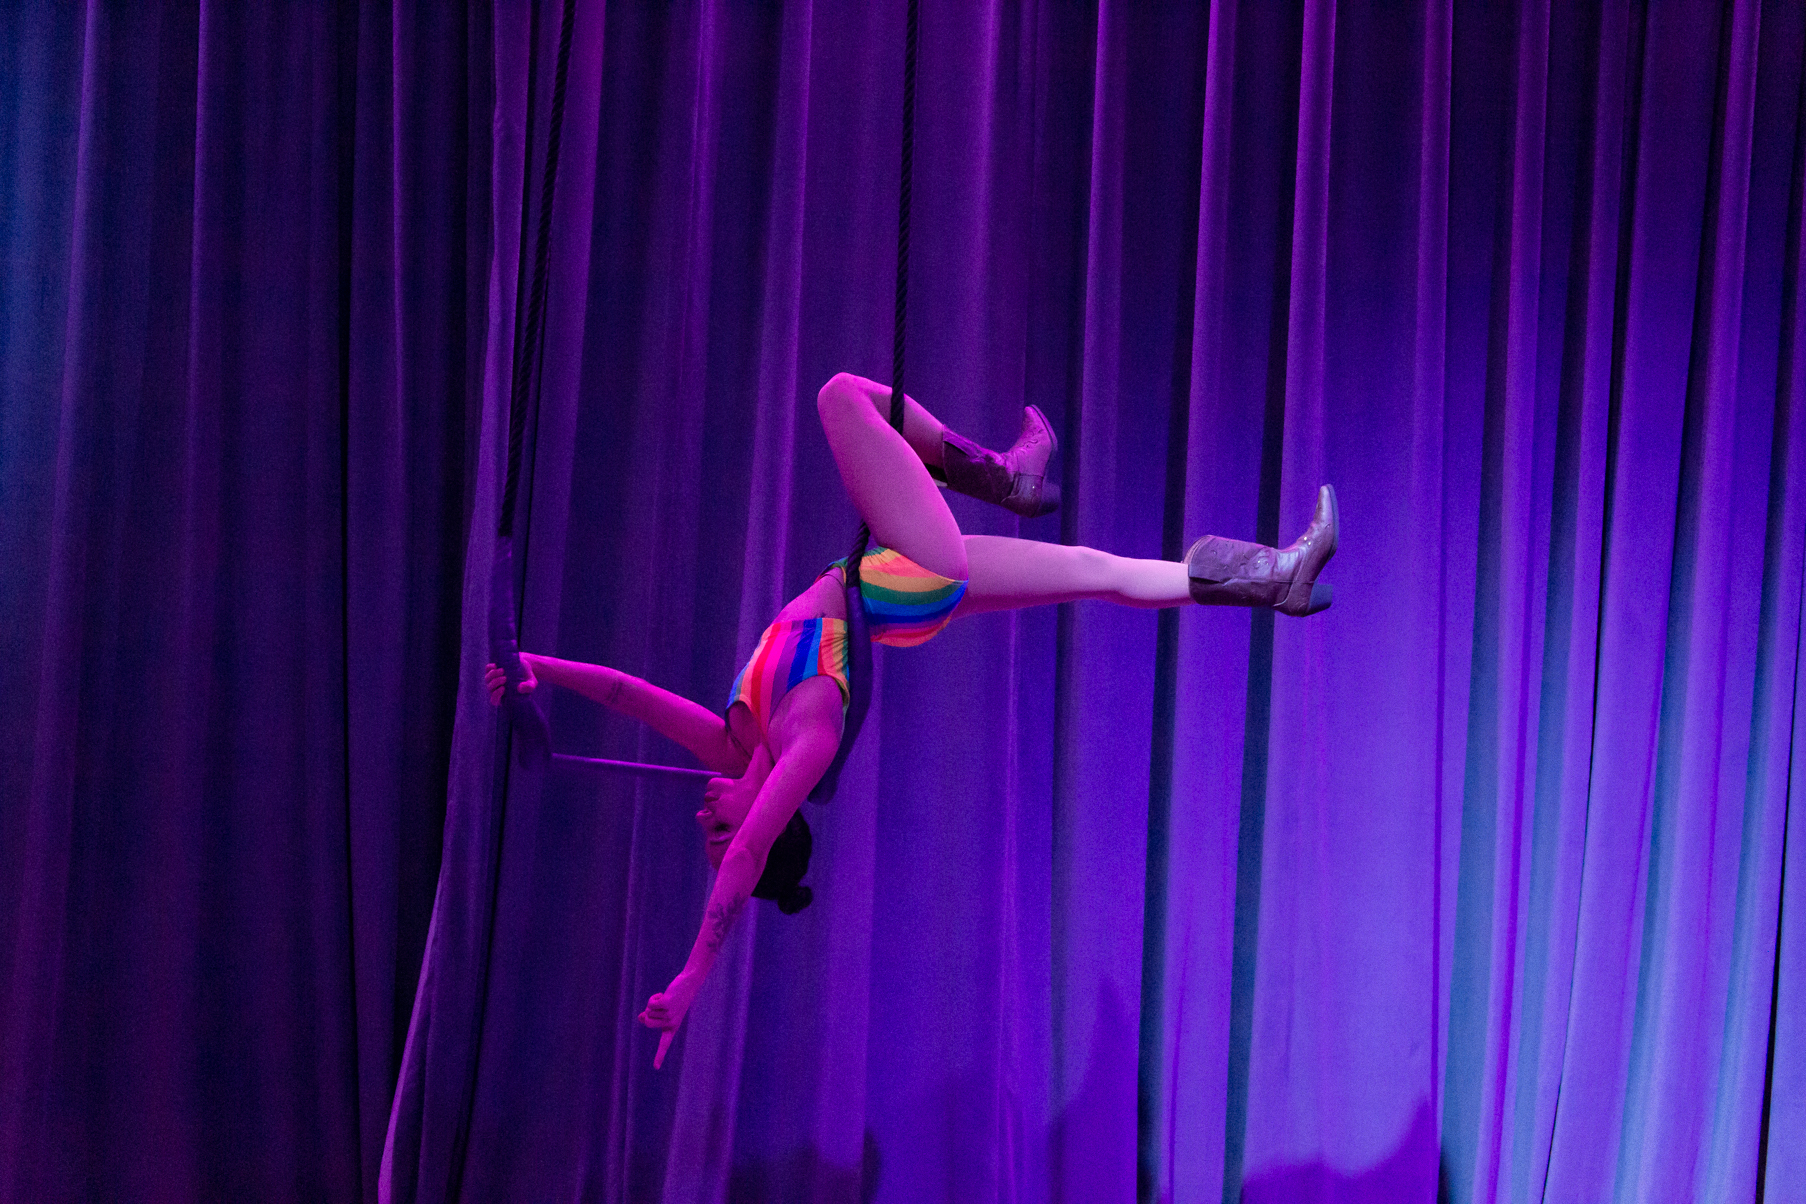 Shohreh holds a pose called bracket on her trapeze, holding her weight in one shoulder upside down on her trapeze bar with her legs extended forward and arms behind her, wearing a rainbow two piece leotard and cowboy boots